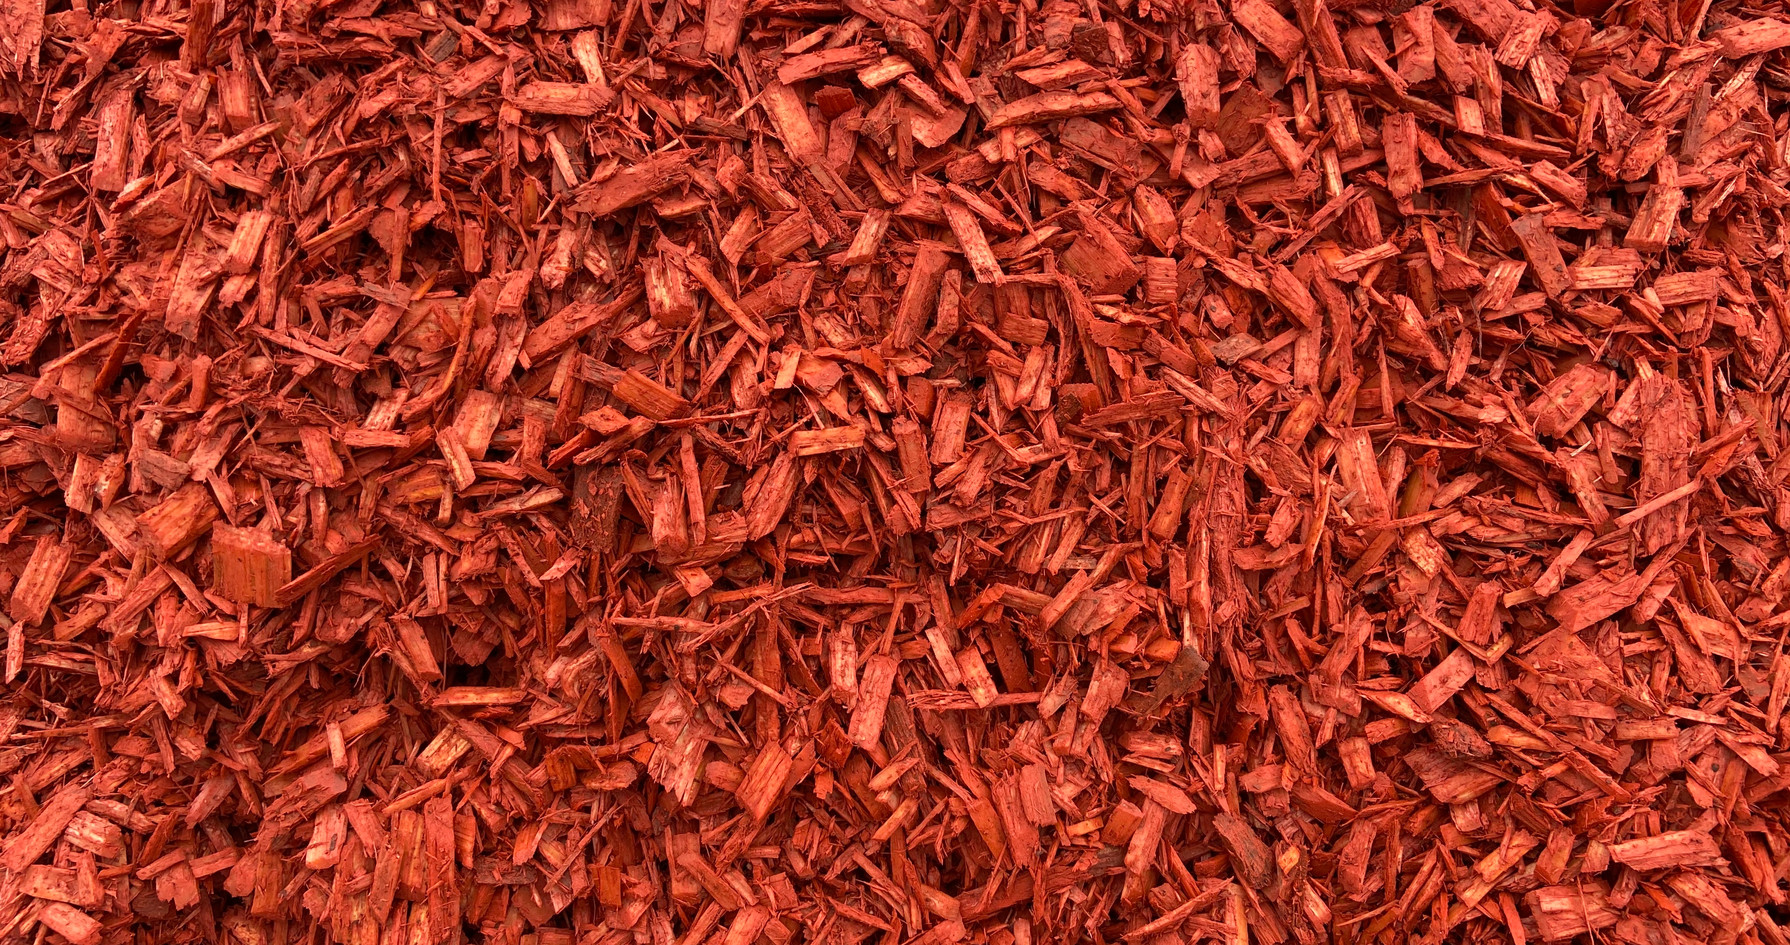 Red Colored Mulch